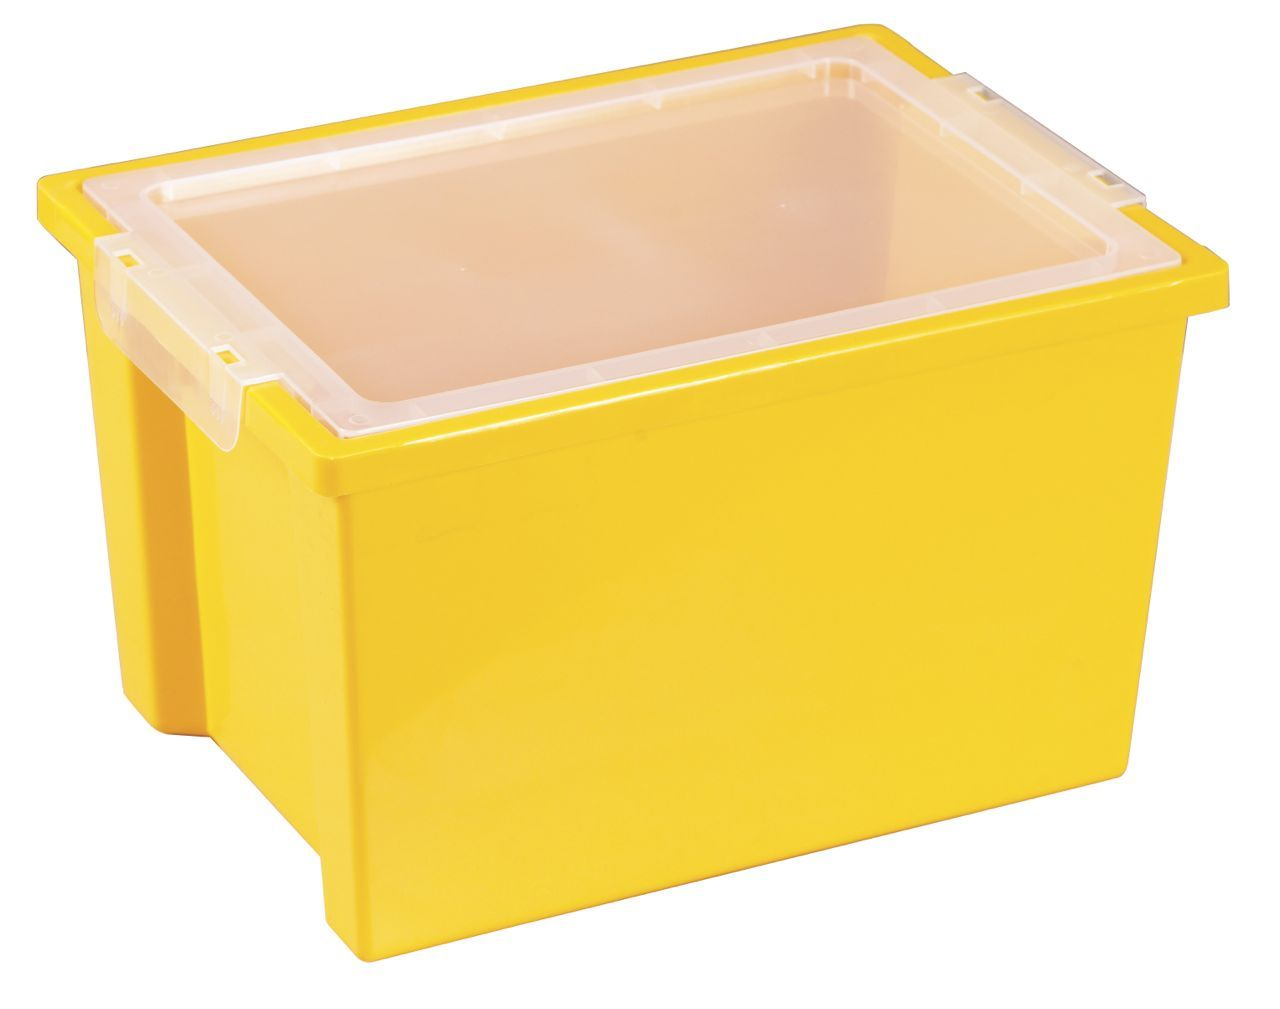 Related Image Storage Boxes With Lids Storage Bins